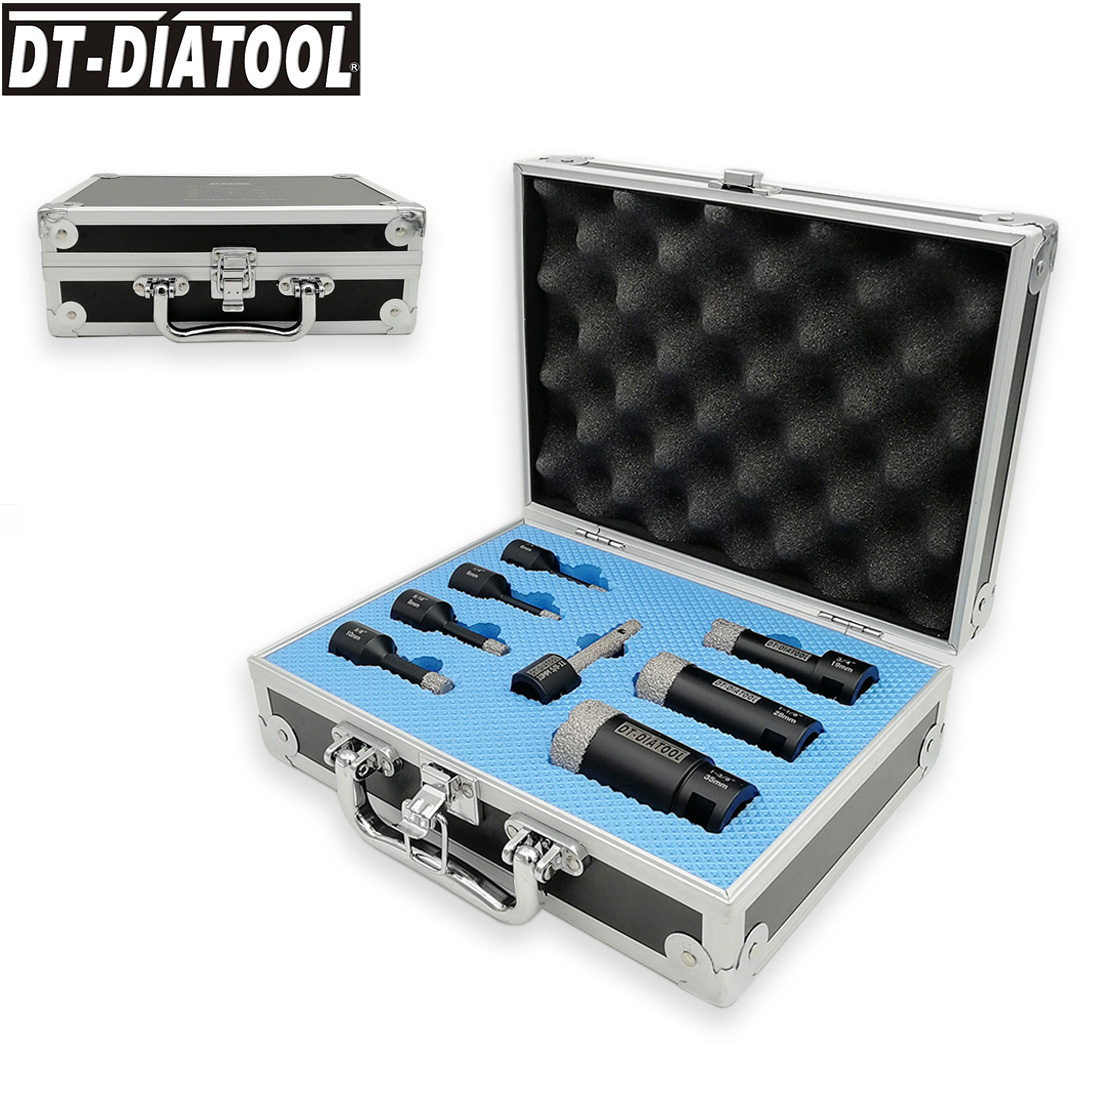 DT DIATOOL 8pcs kit Vacuum Brazed Diamond Drill Core Bits Sets 5 8 11 Connection Hole